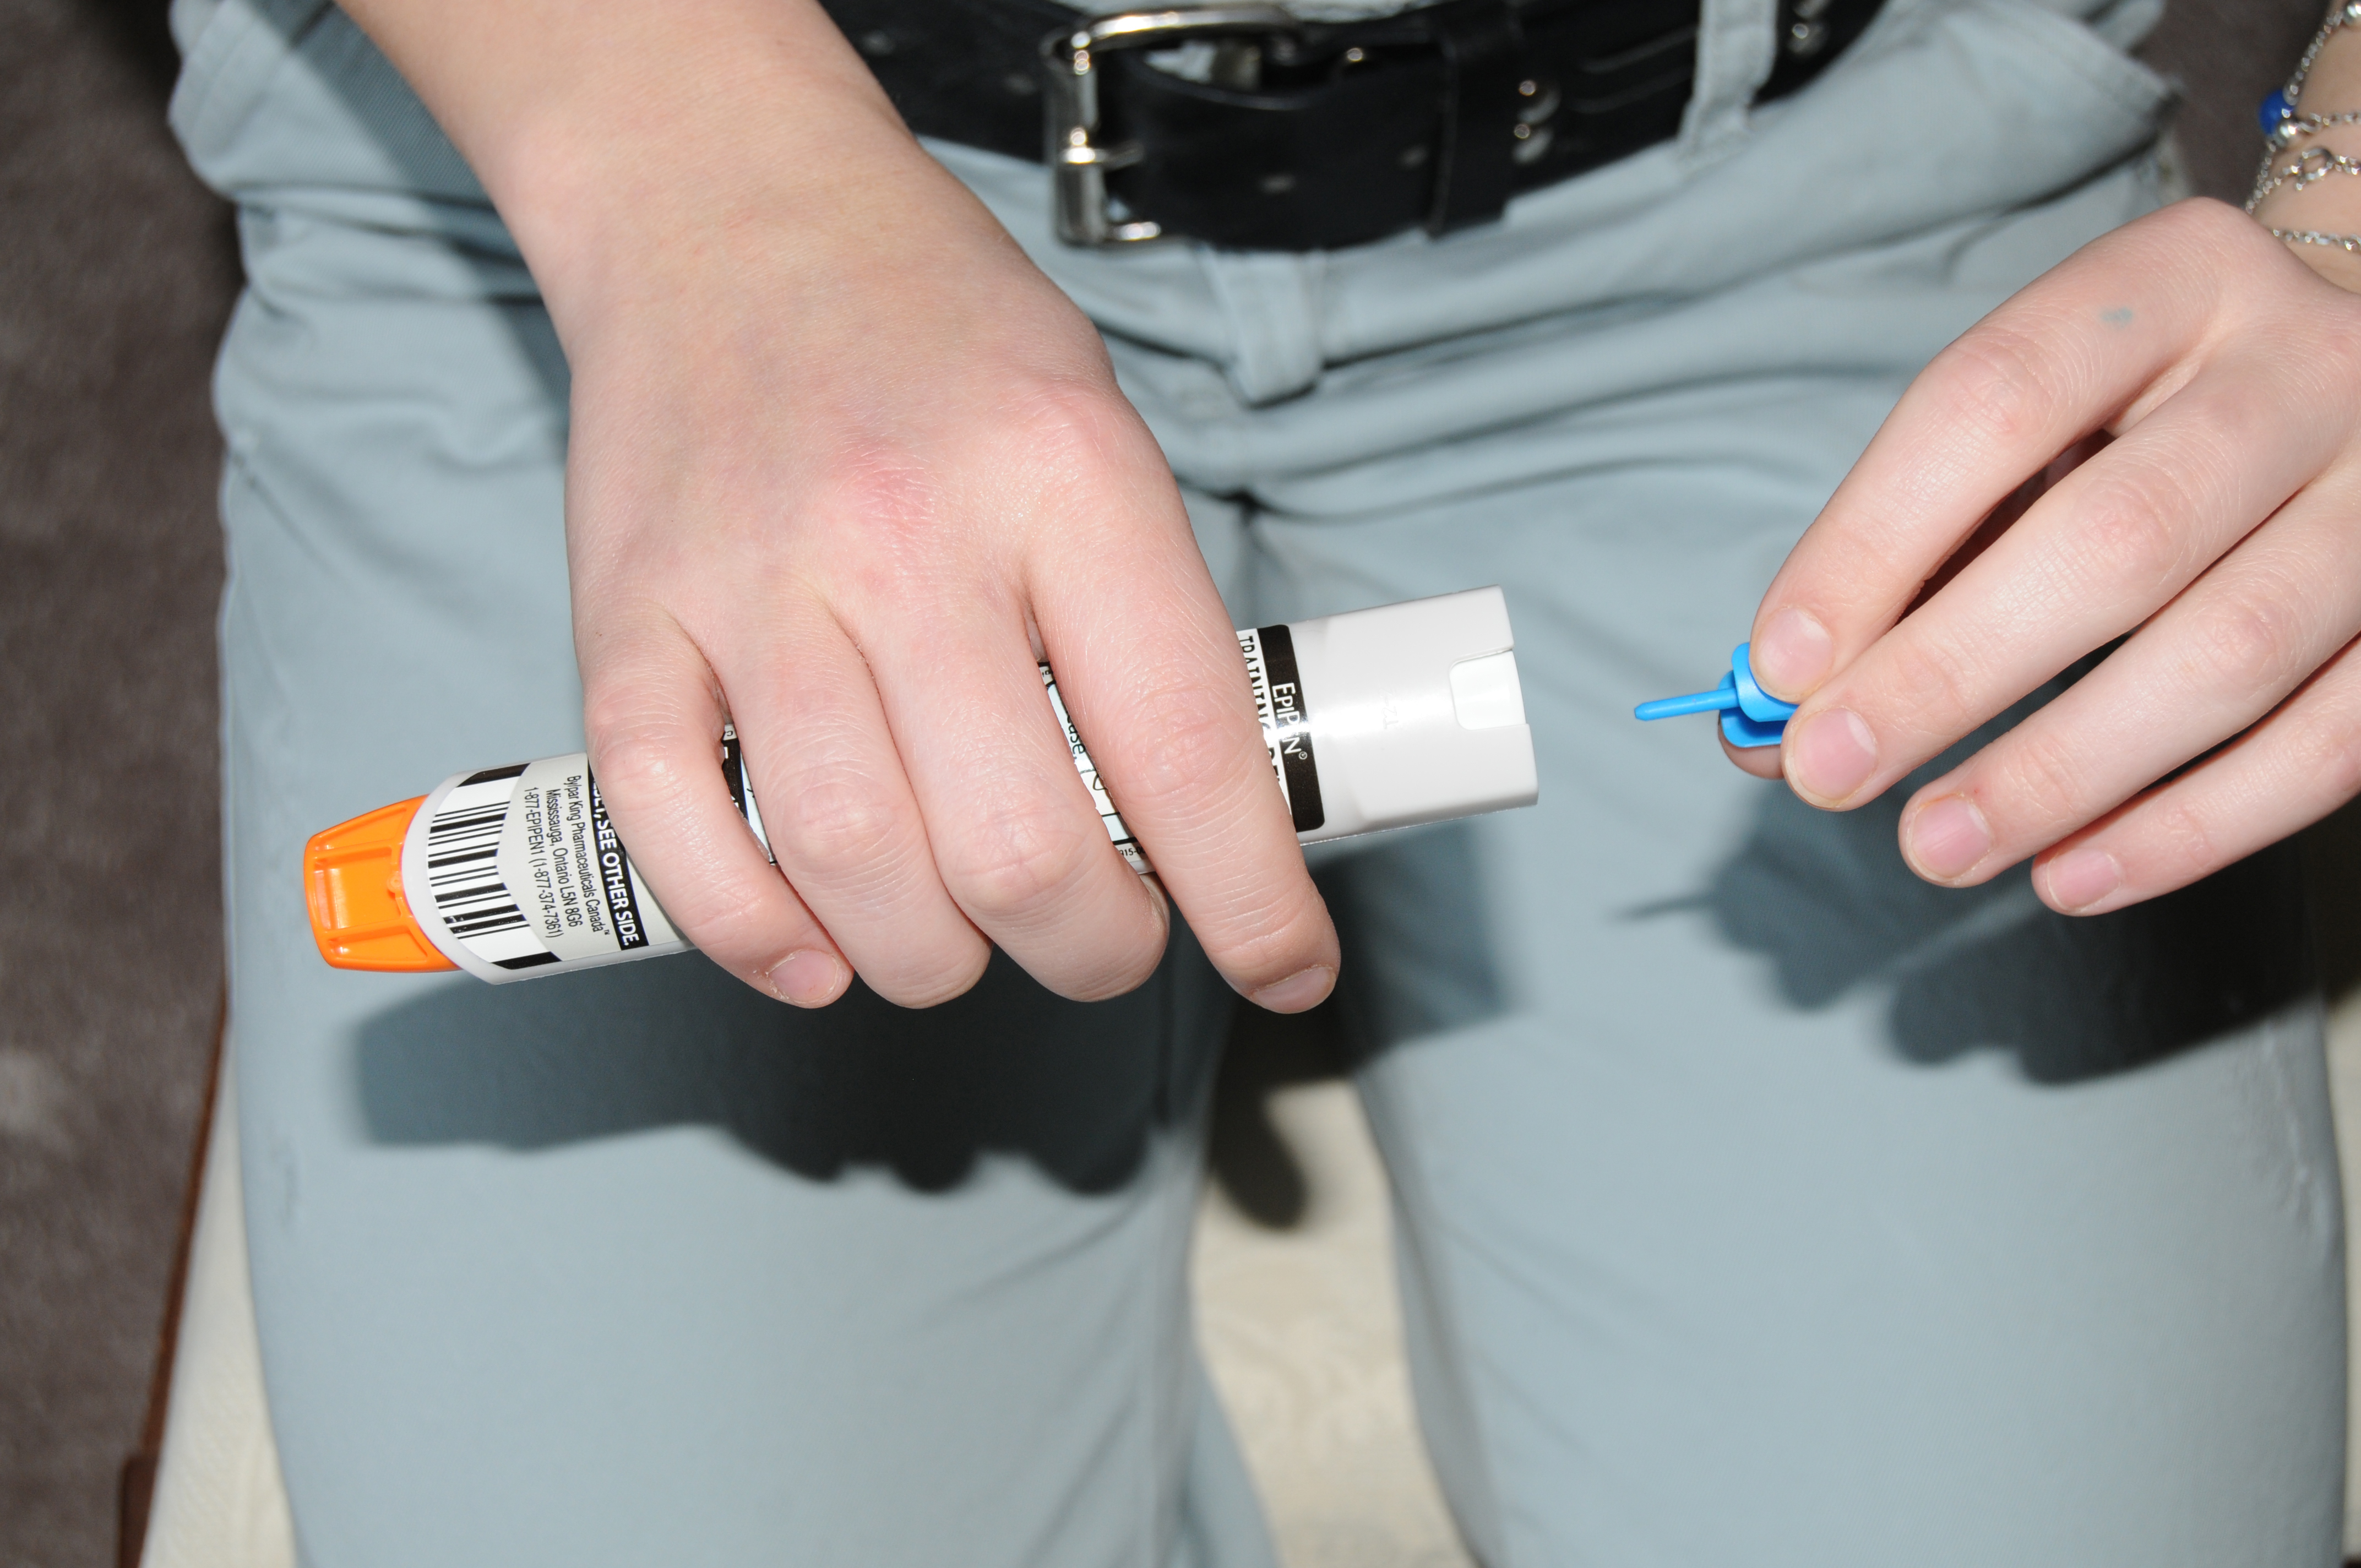 Removing teh cap from an EpiPen training device